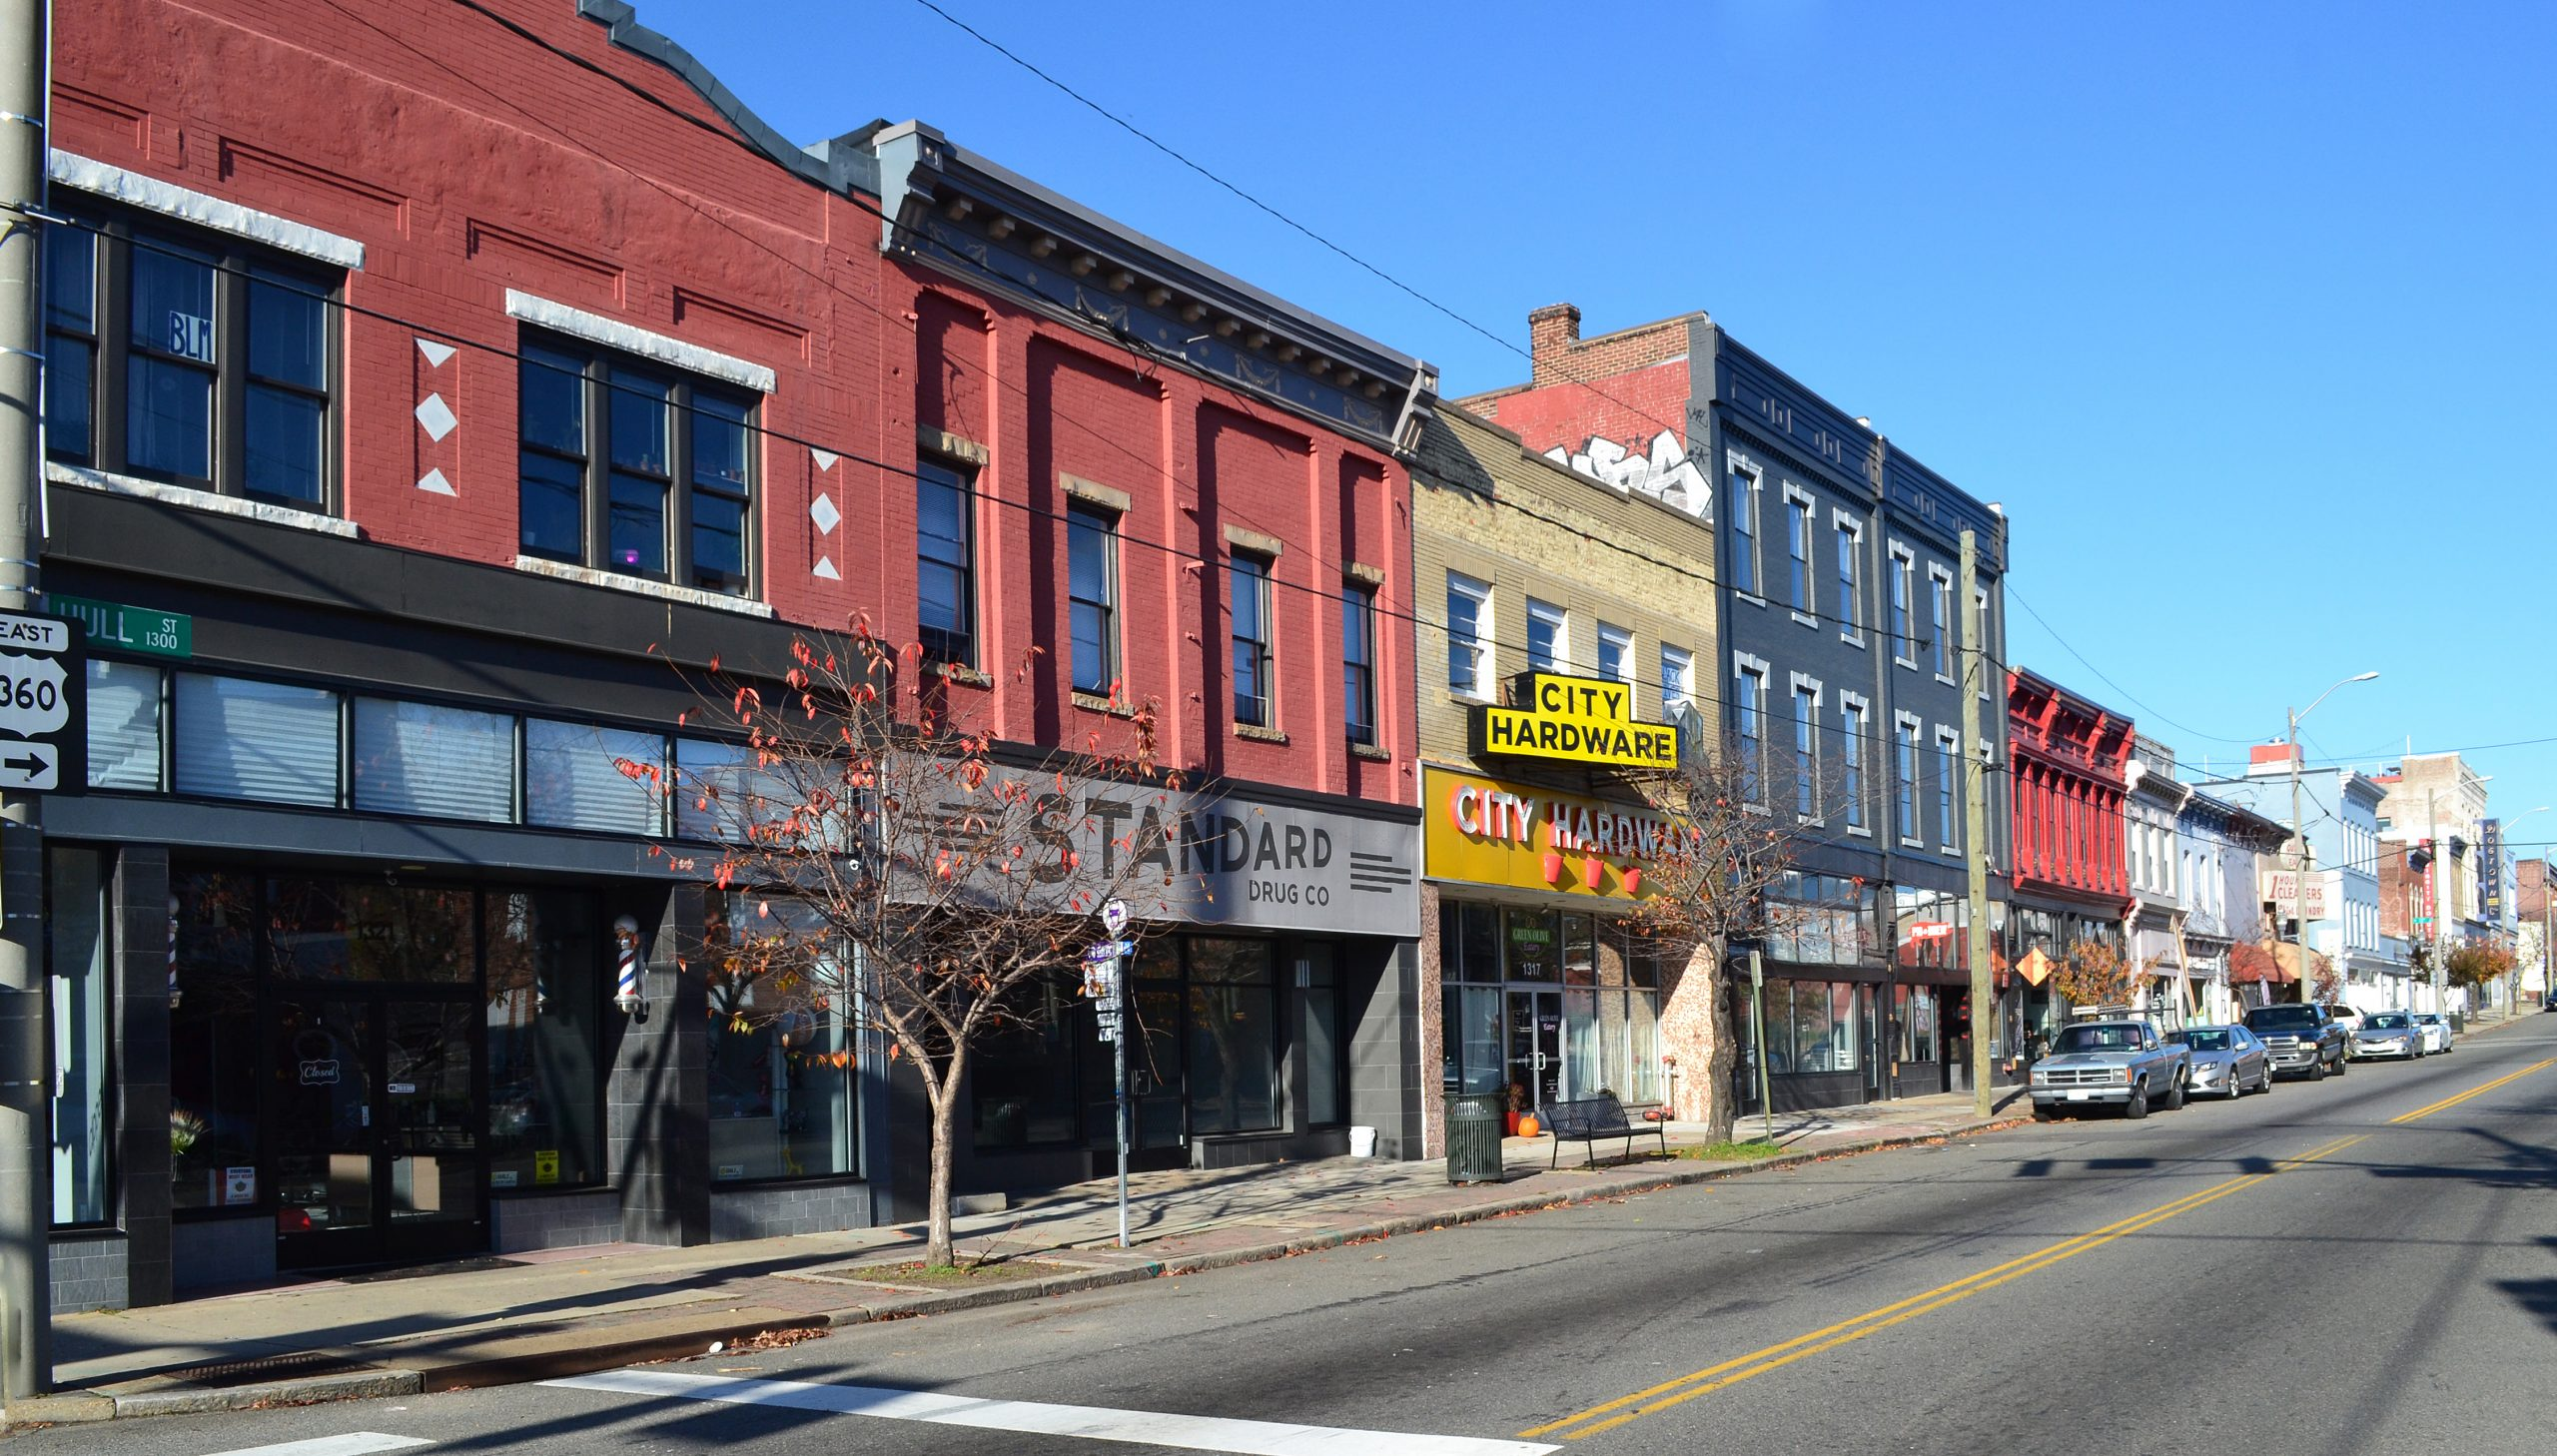 Manchester Residential and Commercial Historic District 2018 Boundary Increase